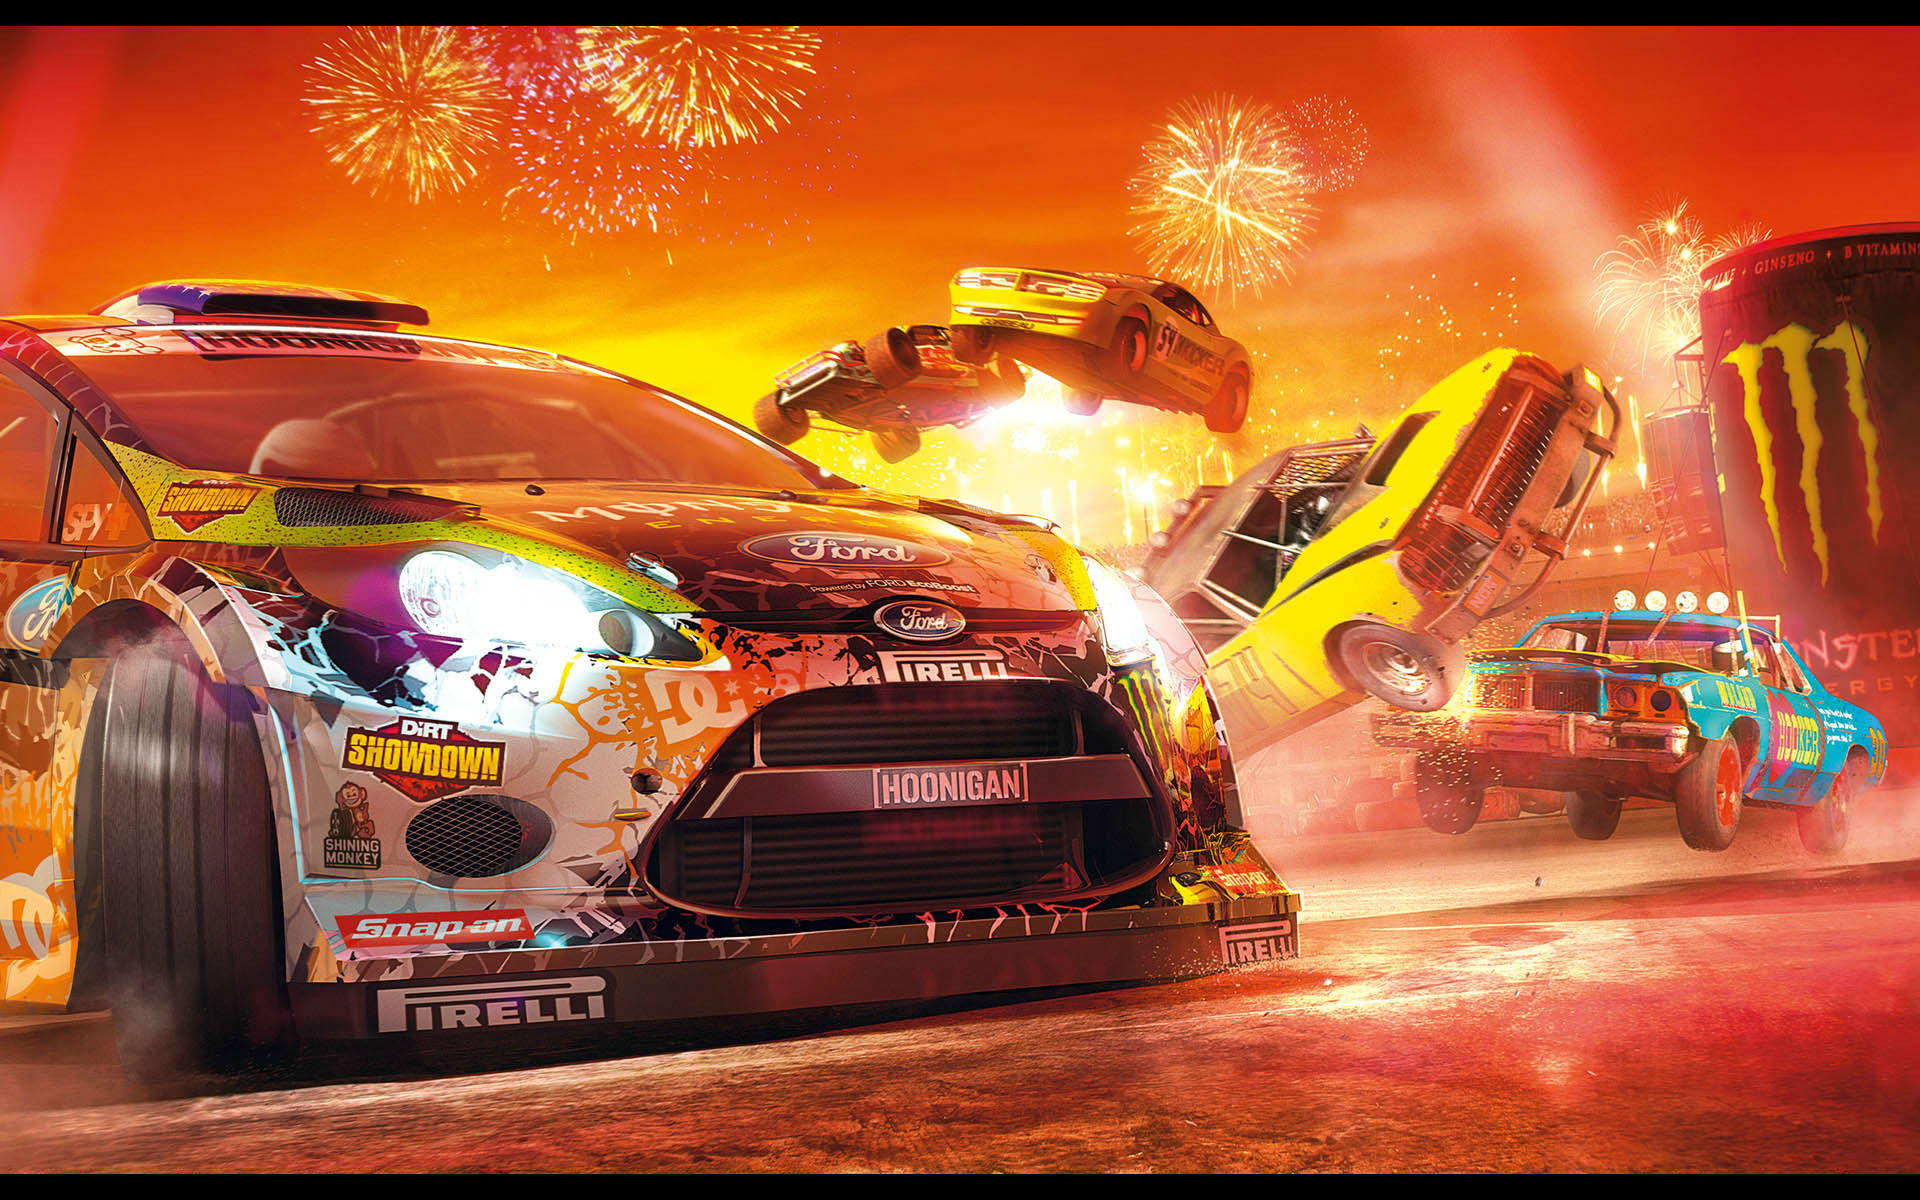 5 Dirt Showdown Hd Wallpapers Backgrounds Wallpaper Abyss